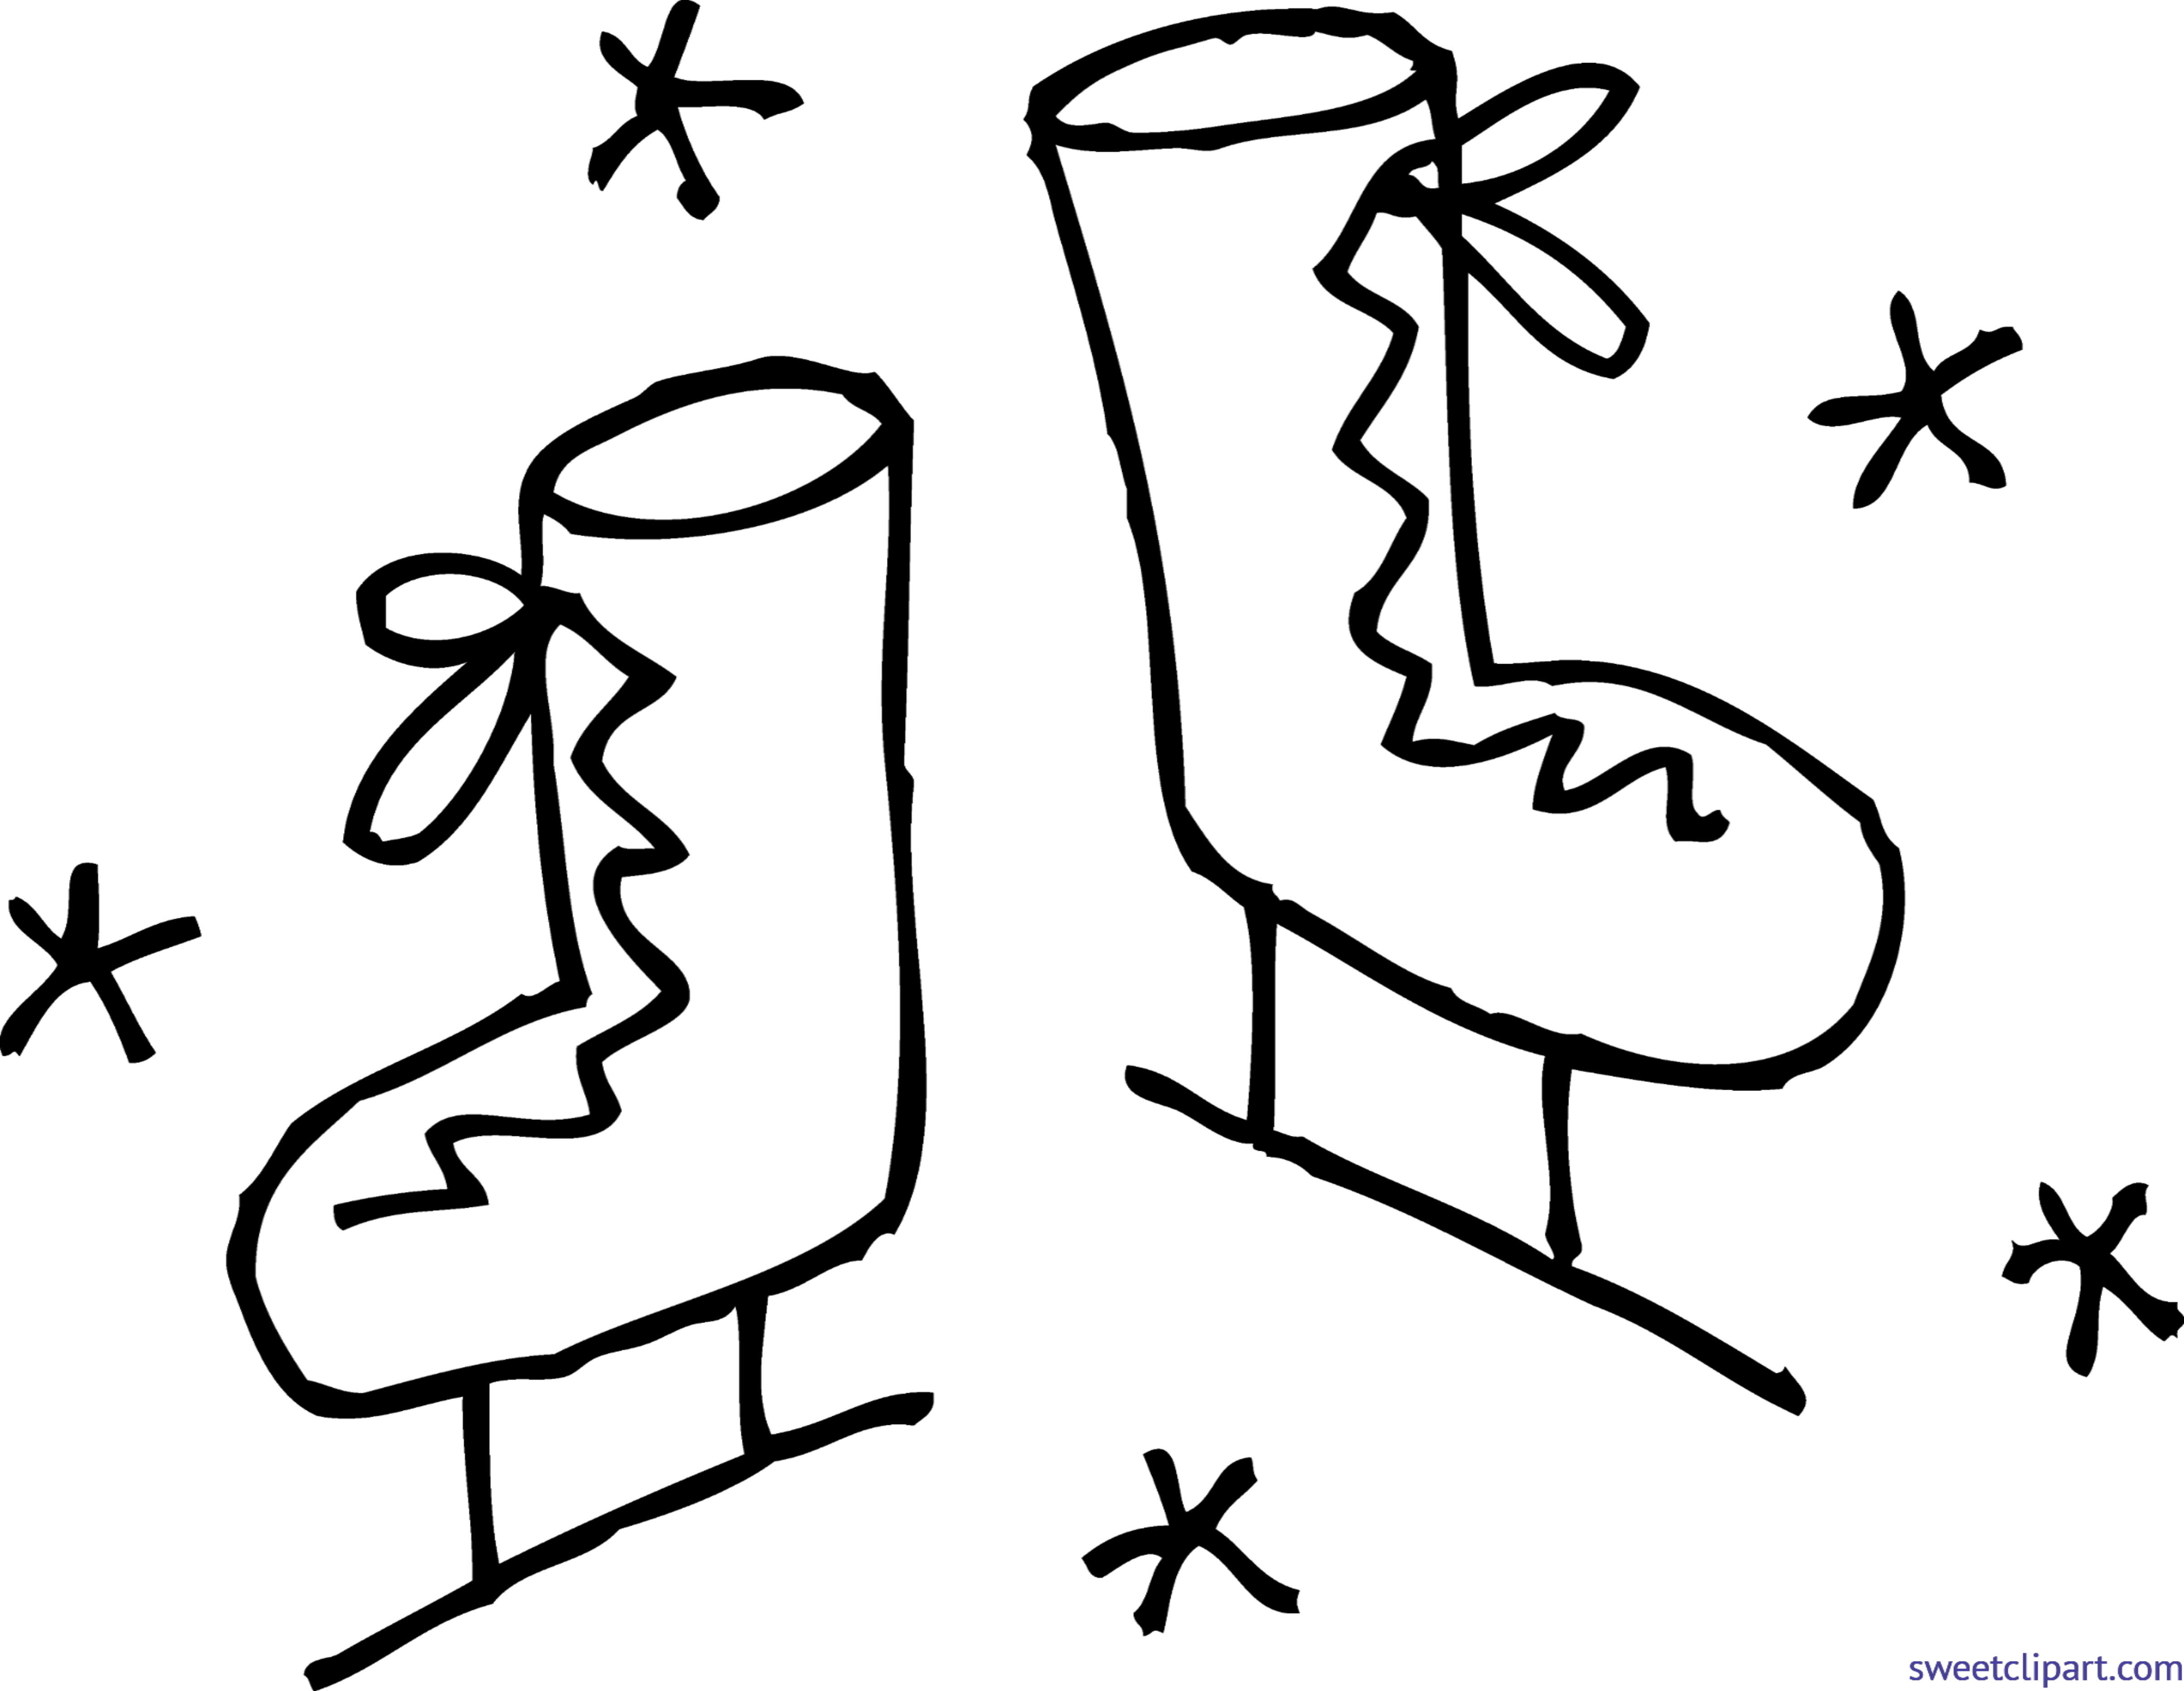 Ice Skates Clipart - Clip Art Ice Skates - Free Transparent PNG Clipart  Images Download